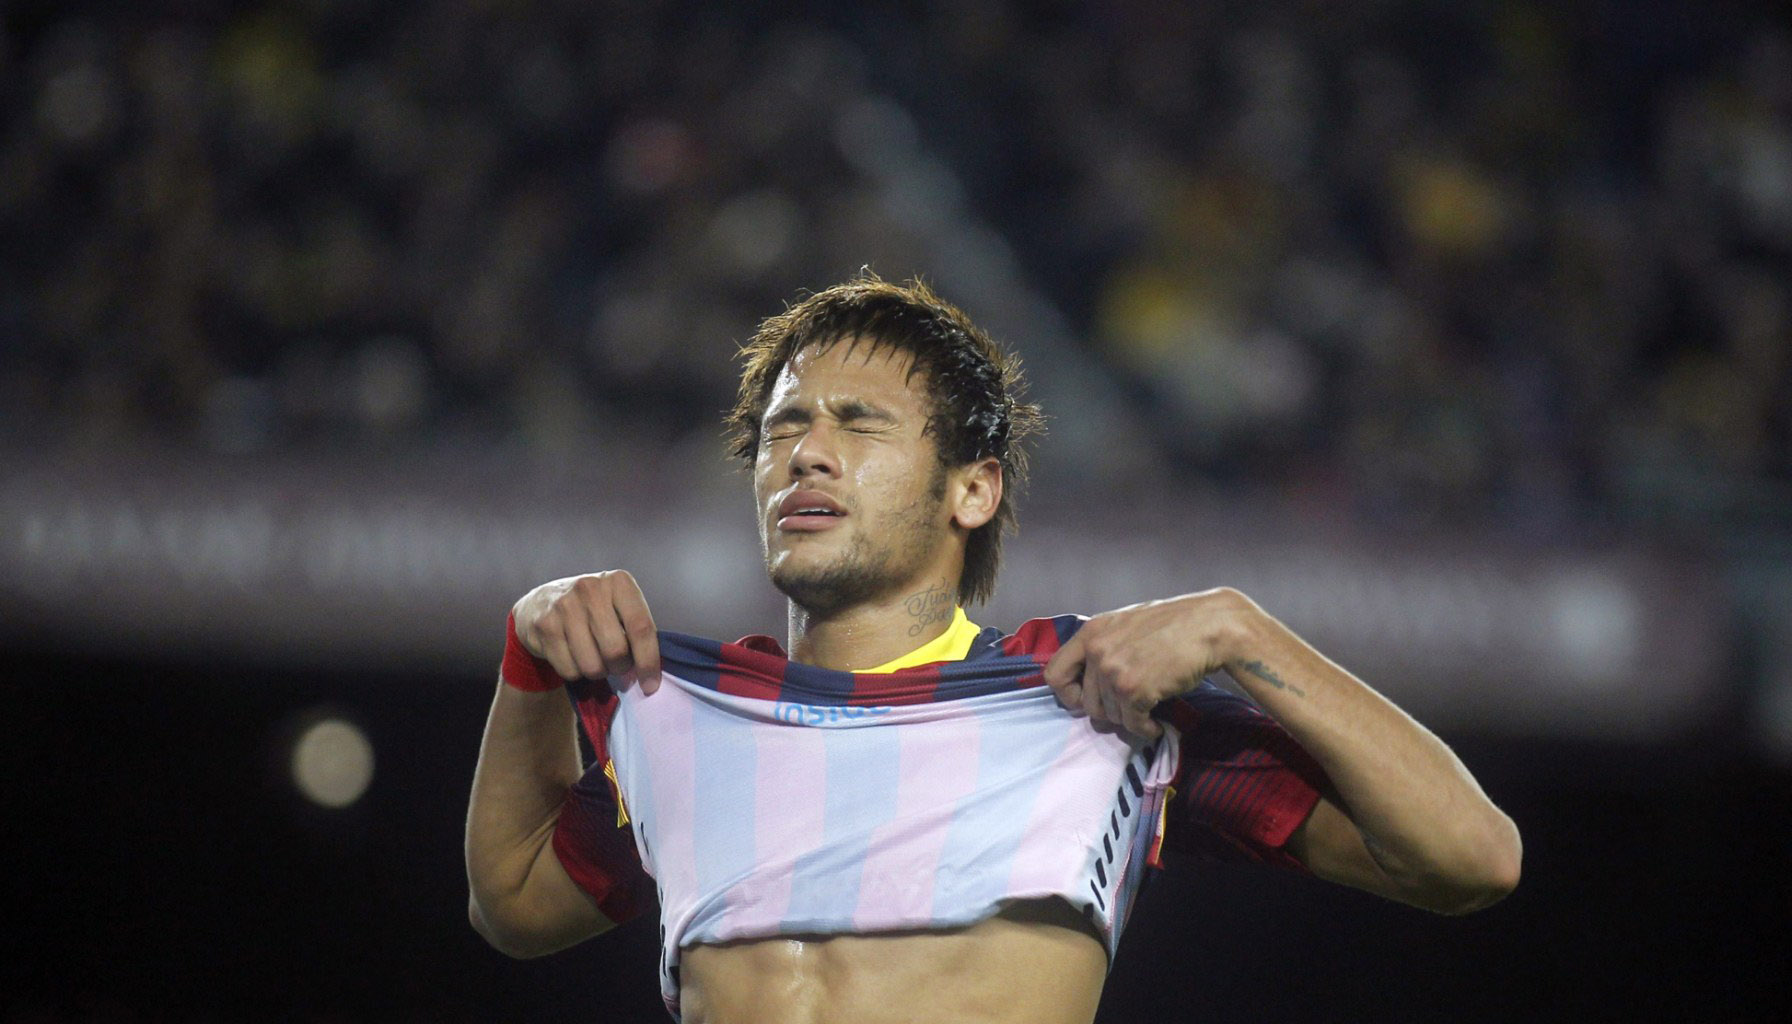 Neymar pulling his shirt off